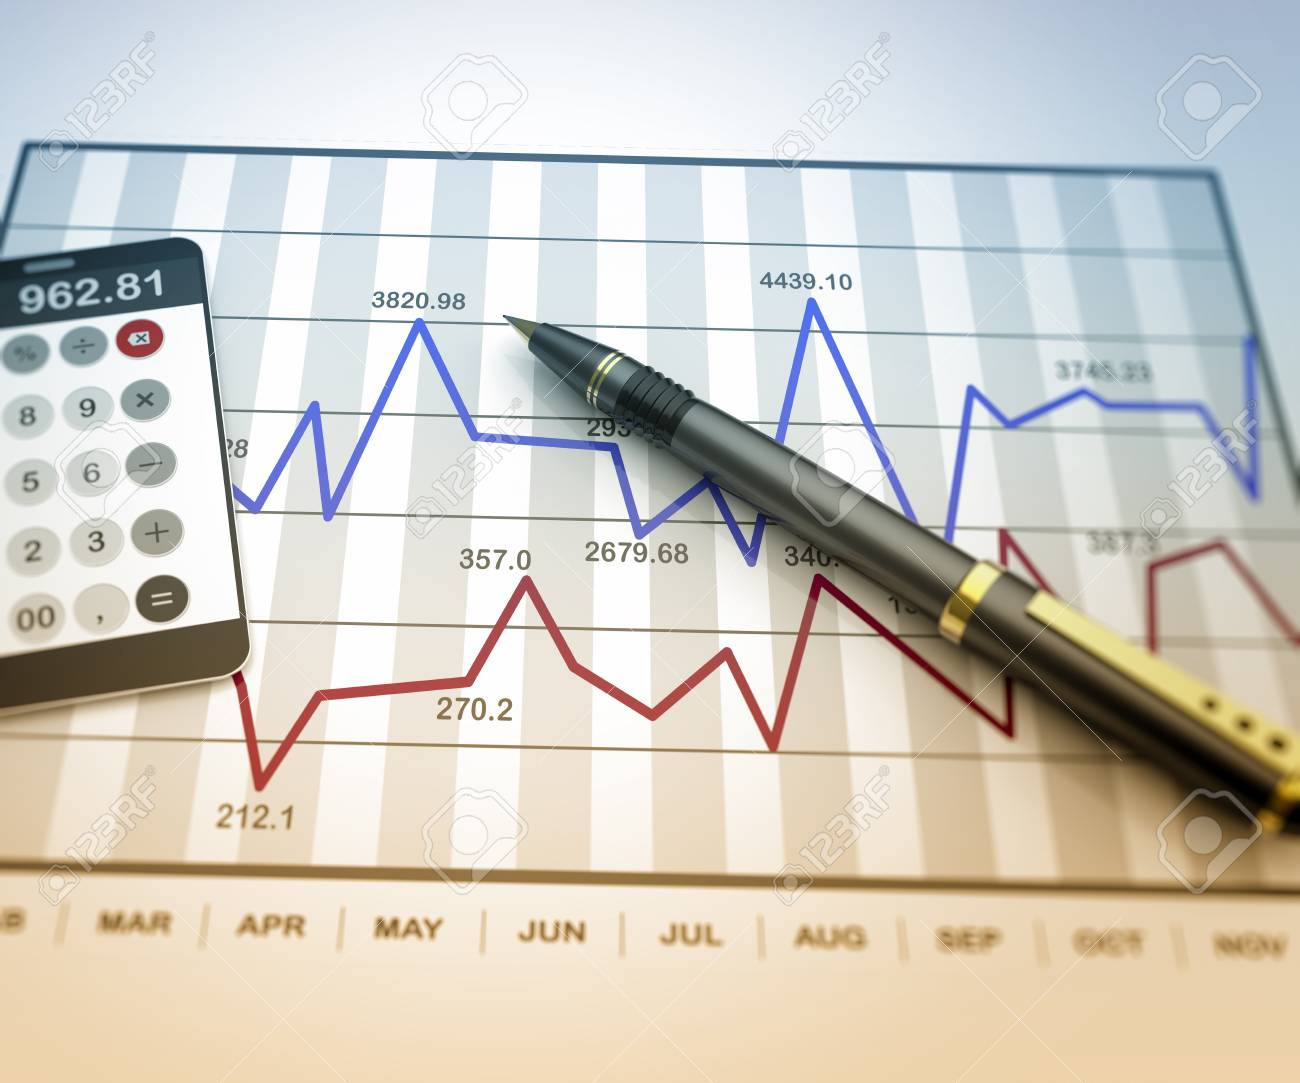 Pen and calculator on stock chart - 24166941